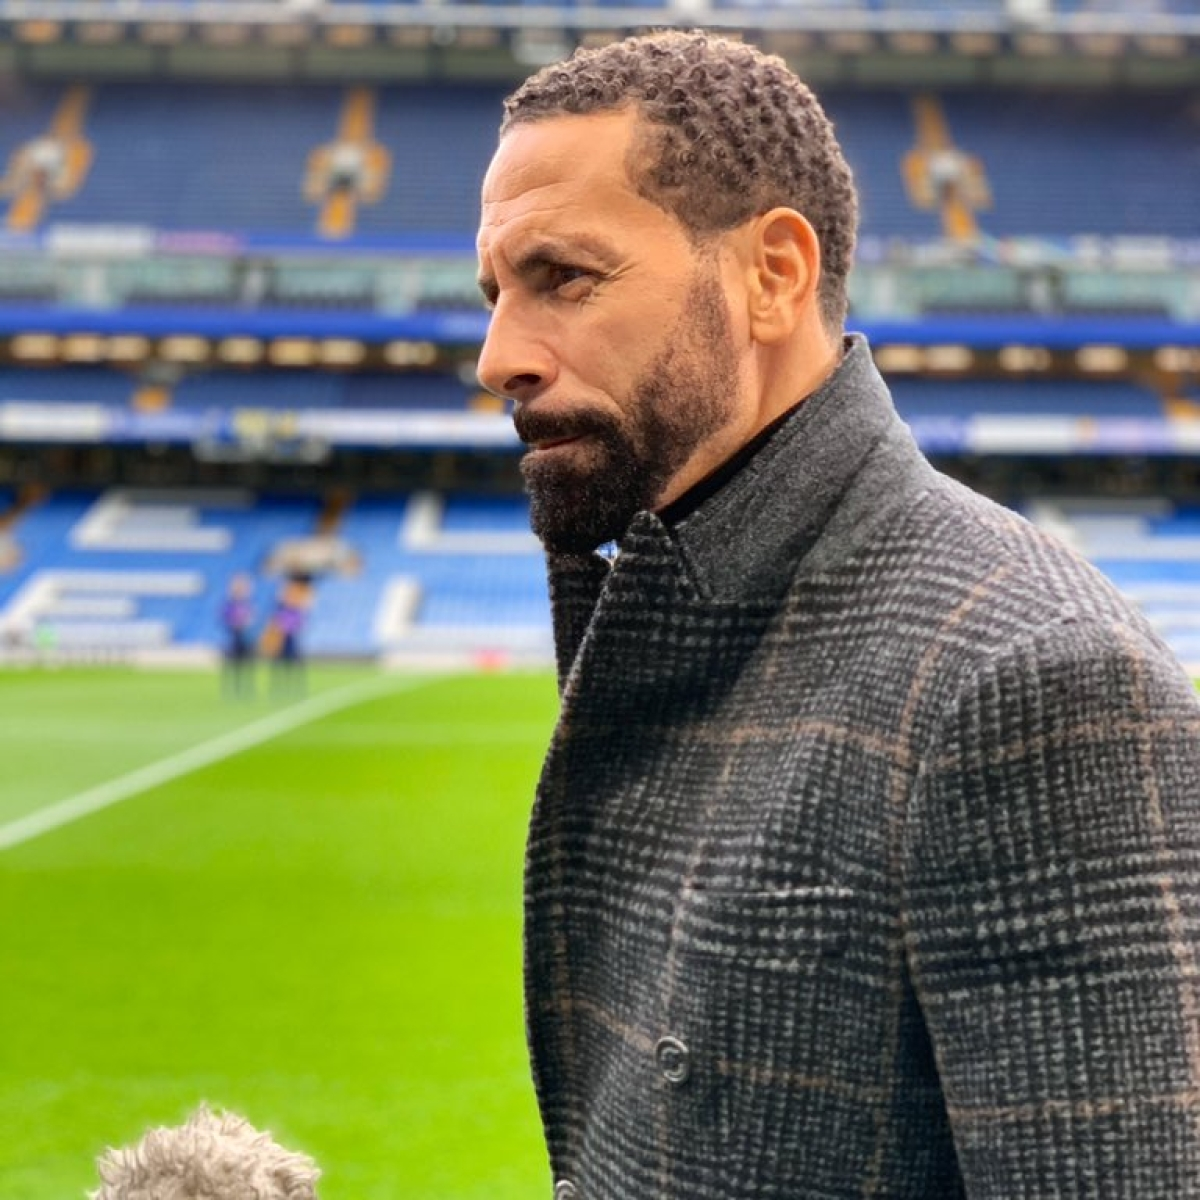 Rio Ferdinand doesn't want Liverpool to win their first title in 30 years